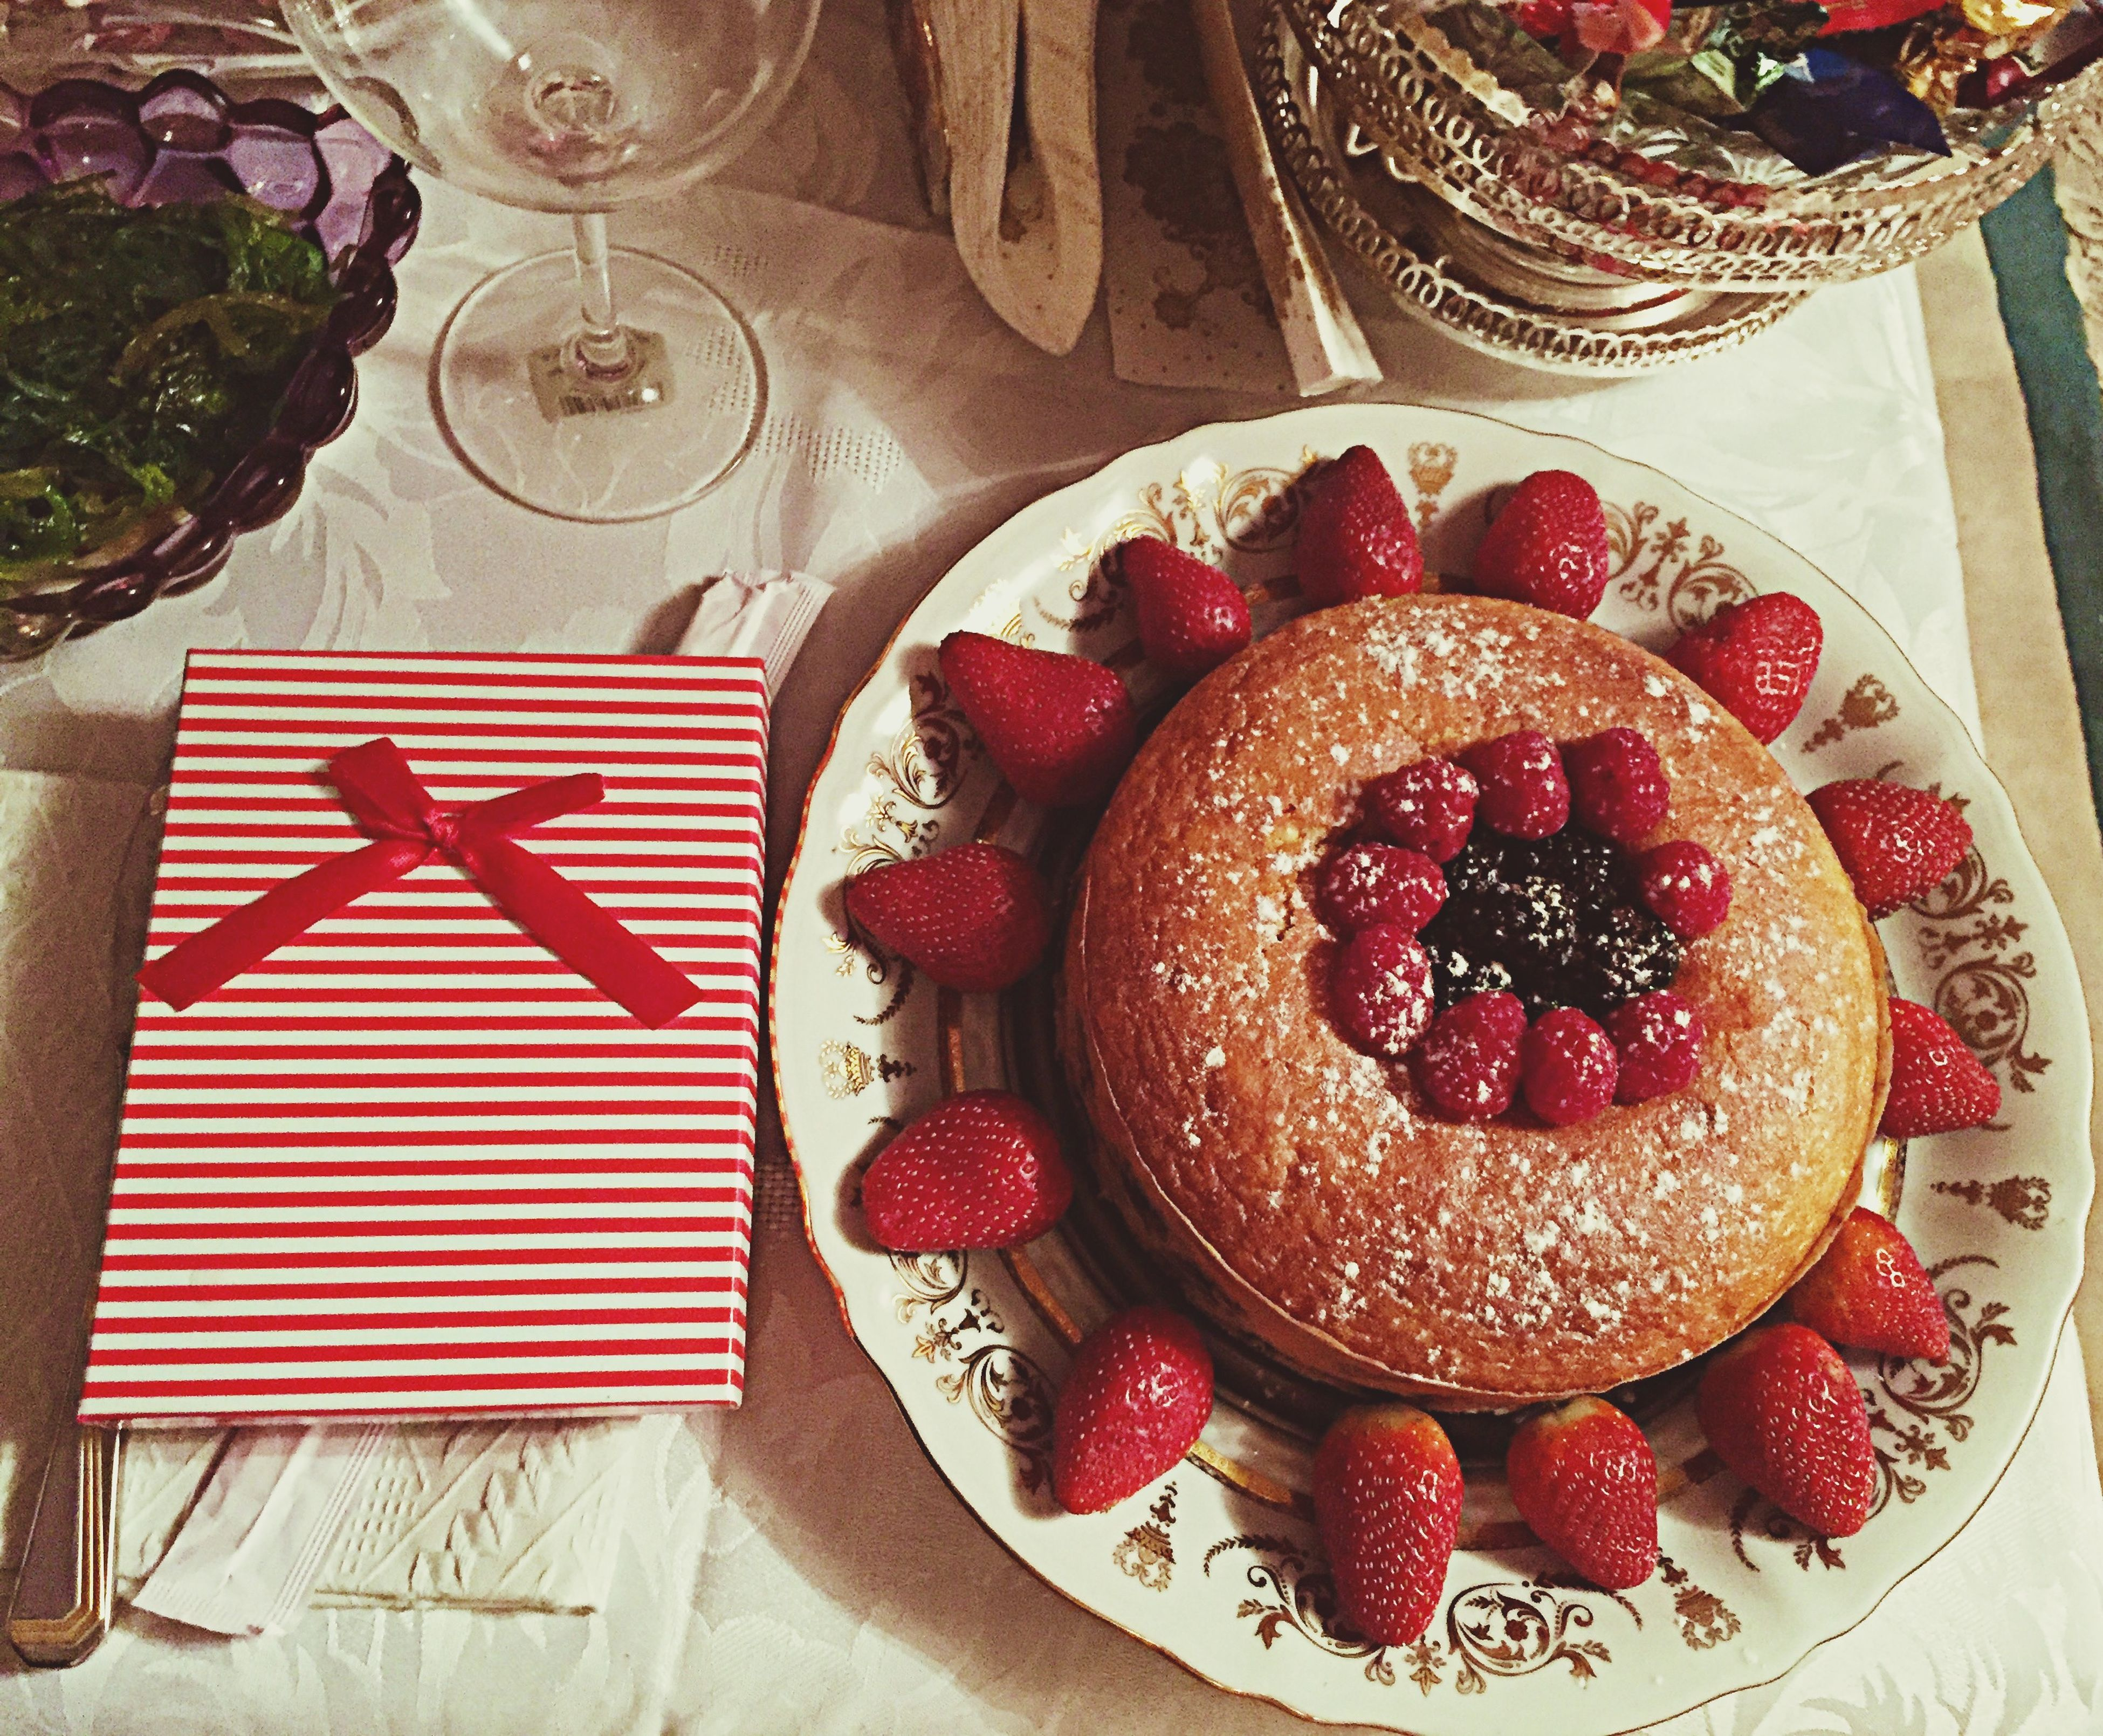 indoors, food and drink, red, food, table, sweet food, strawberry, freshness, still life, plate, dessert, ready-to-eat, indulgence, fruit, cake, unhealthy eating, high angle view, tablecloth, temptation, decoration